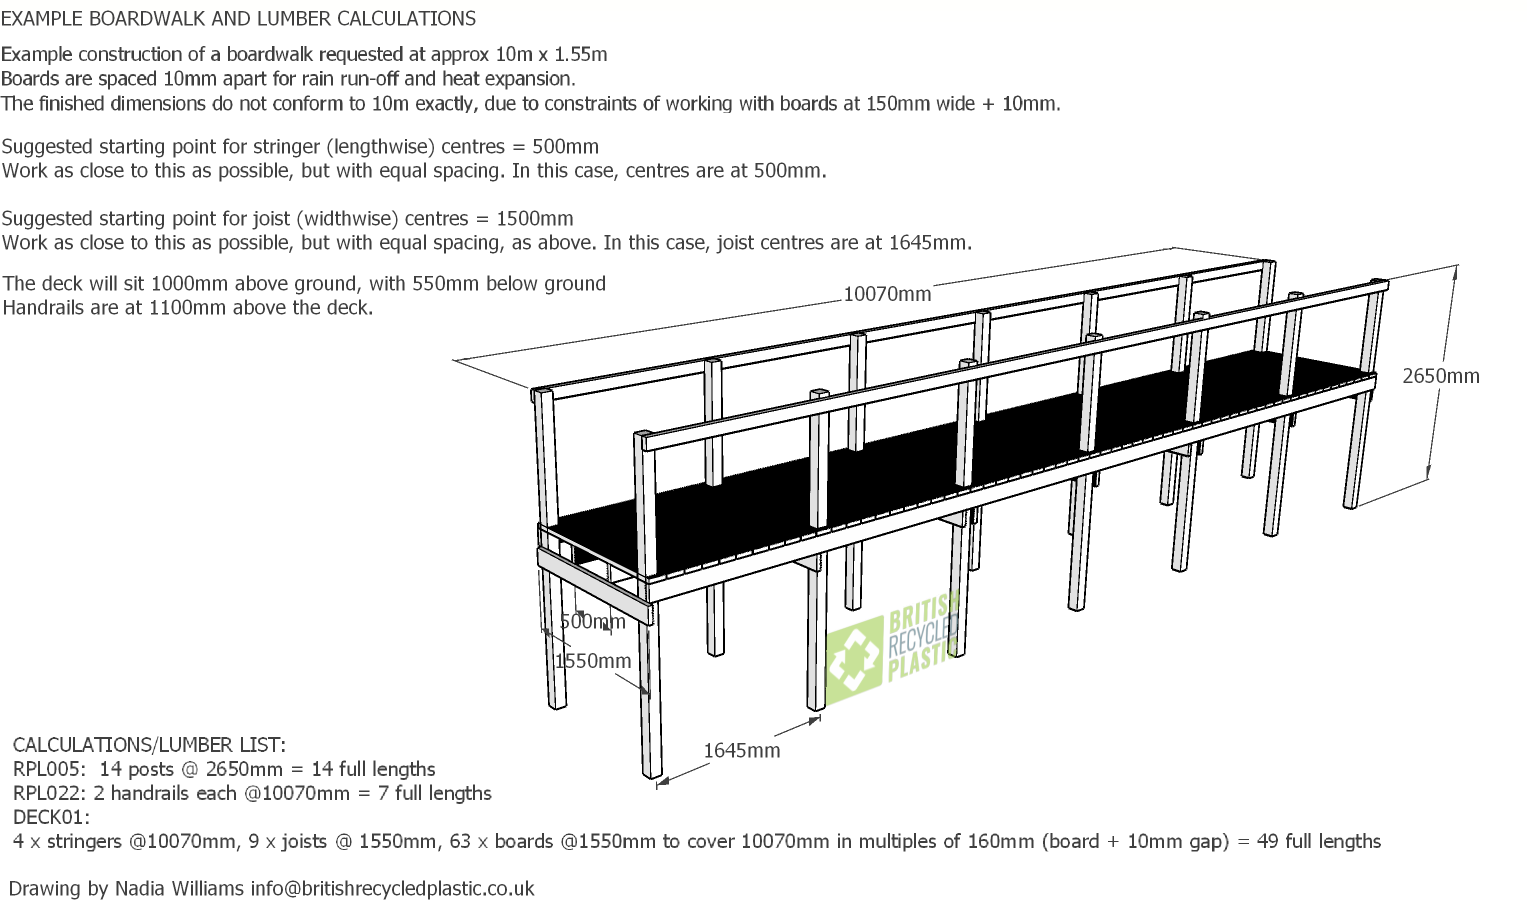 Example calculations for a recycled plastic boardwalk